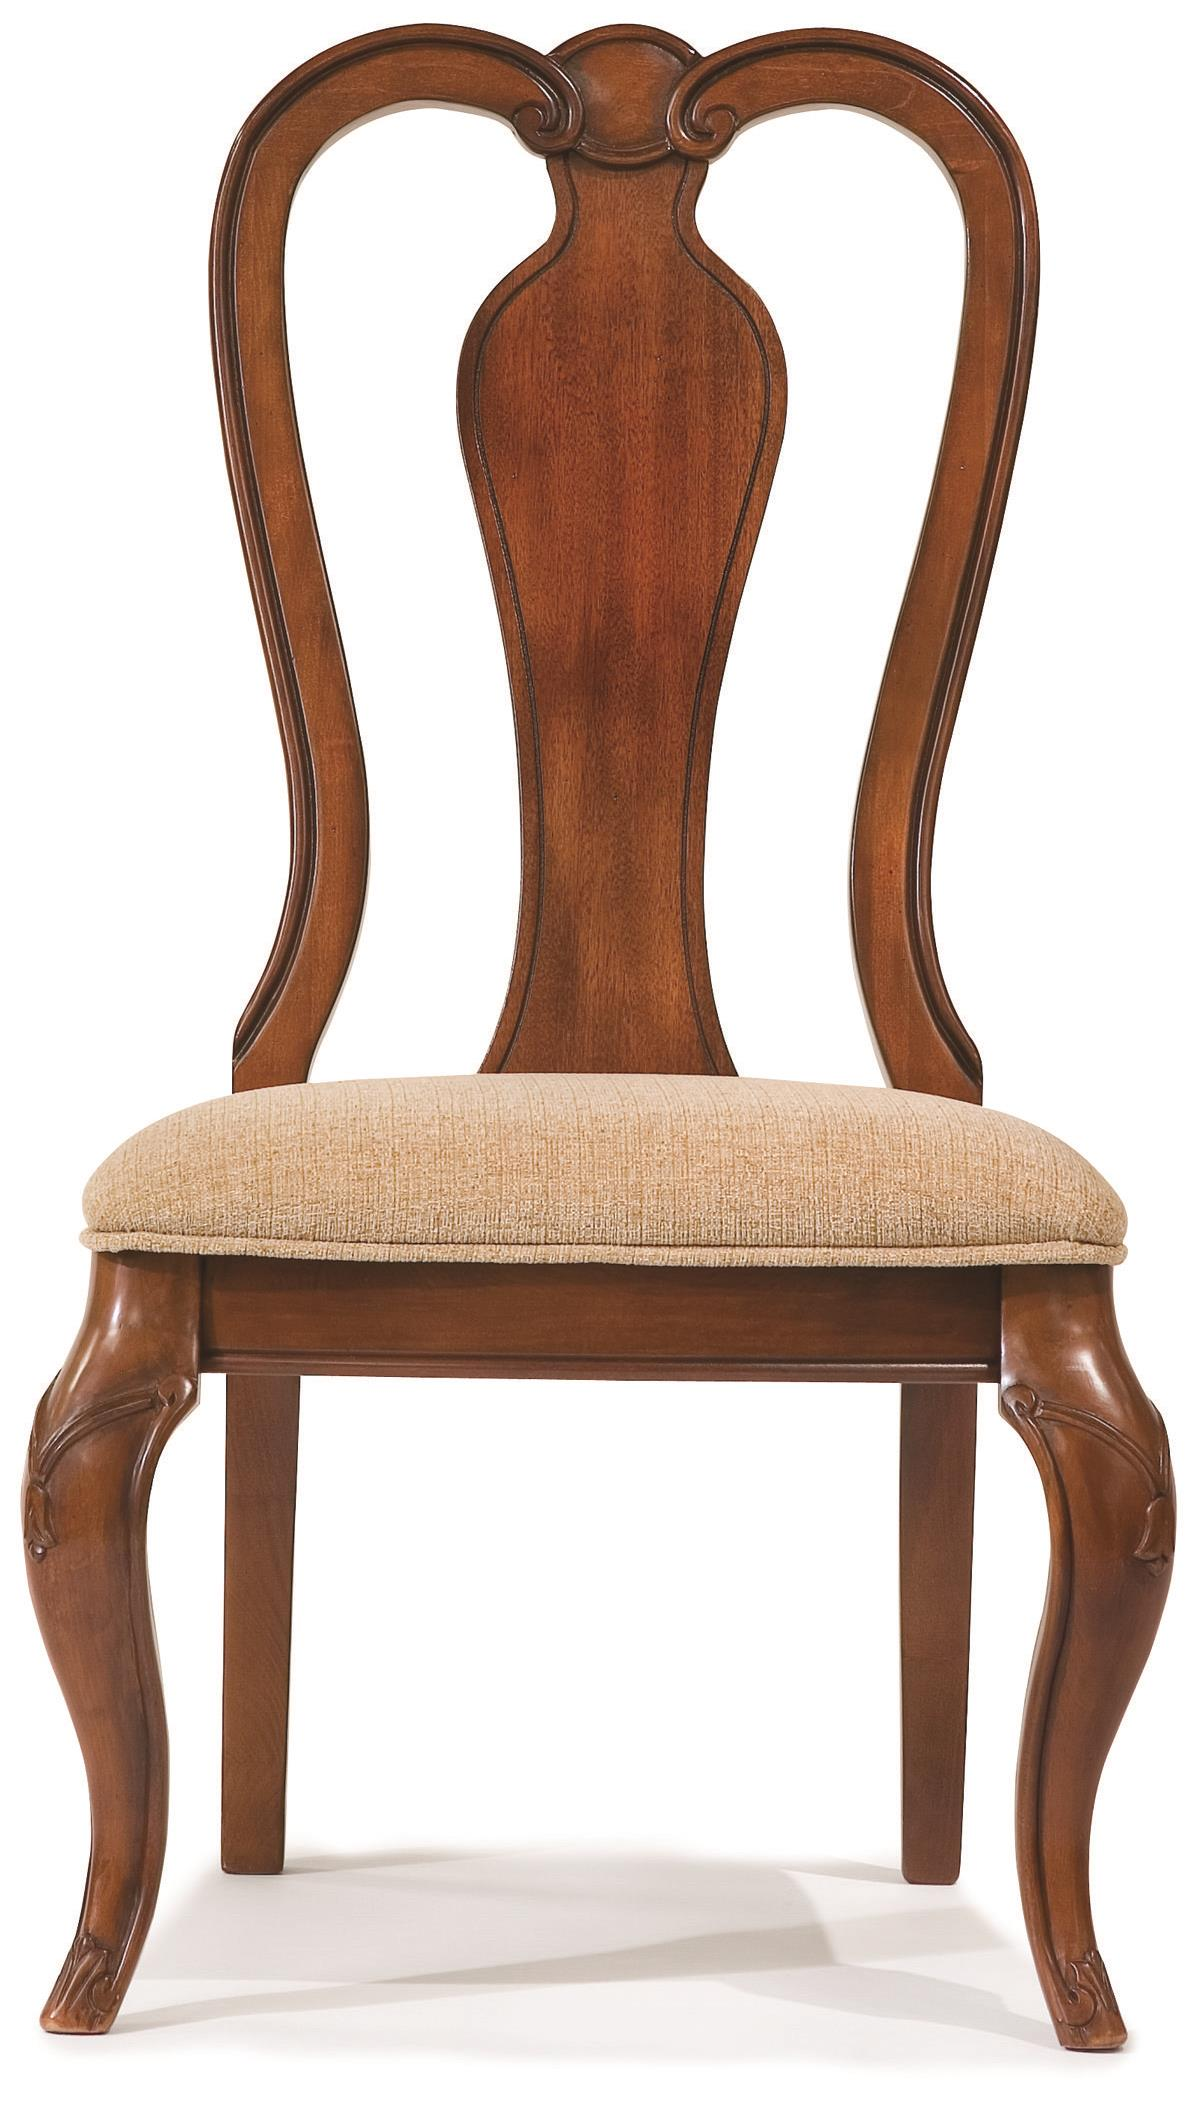 Legacy classic evolution 9180 140 kd queen anne side chair for Dining chair upholstered seat